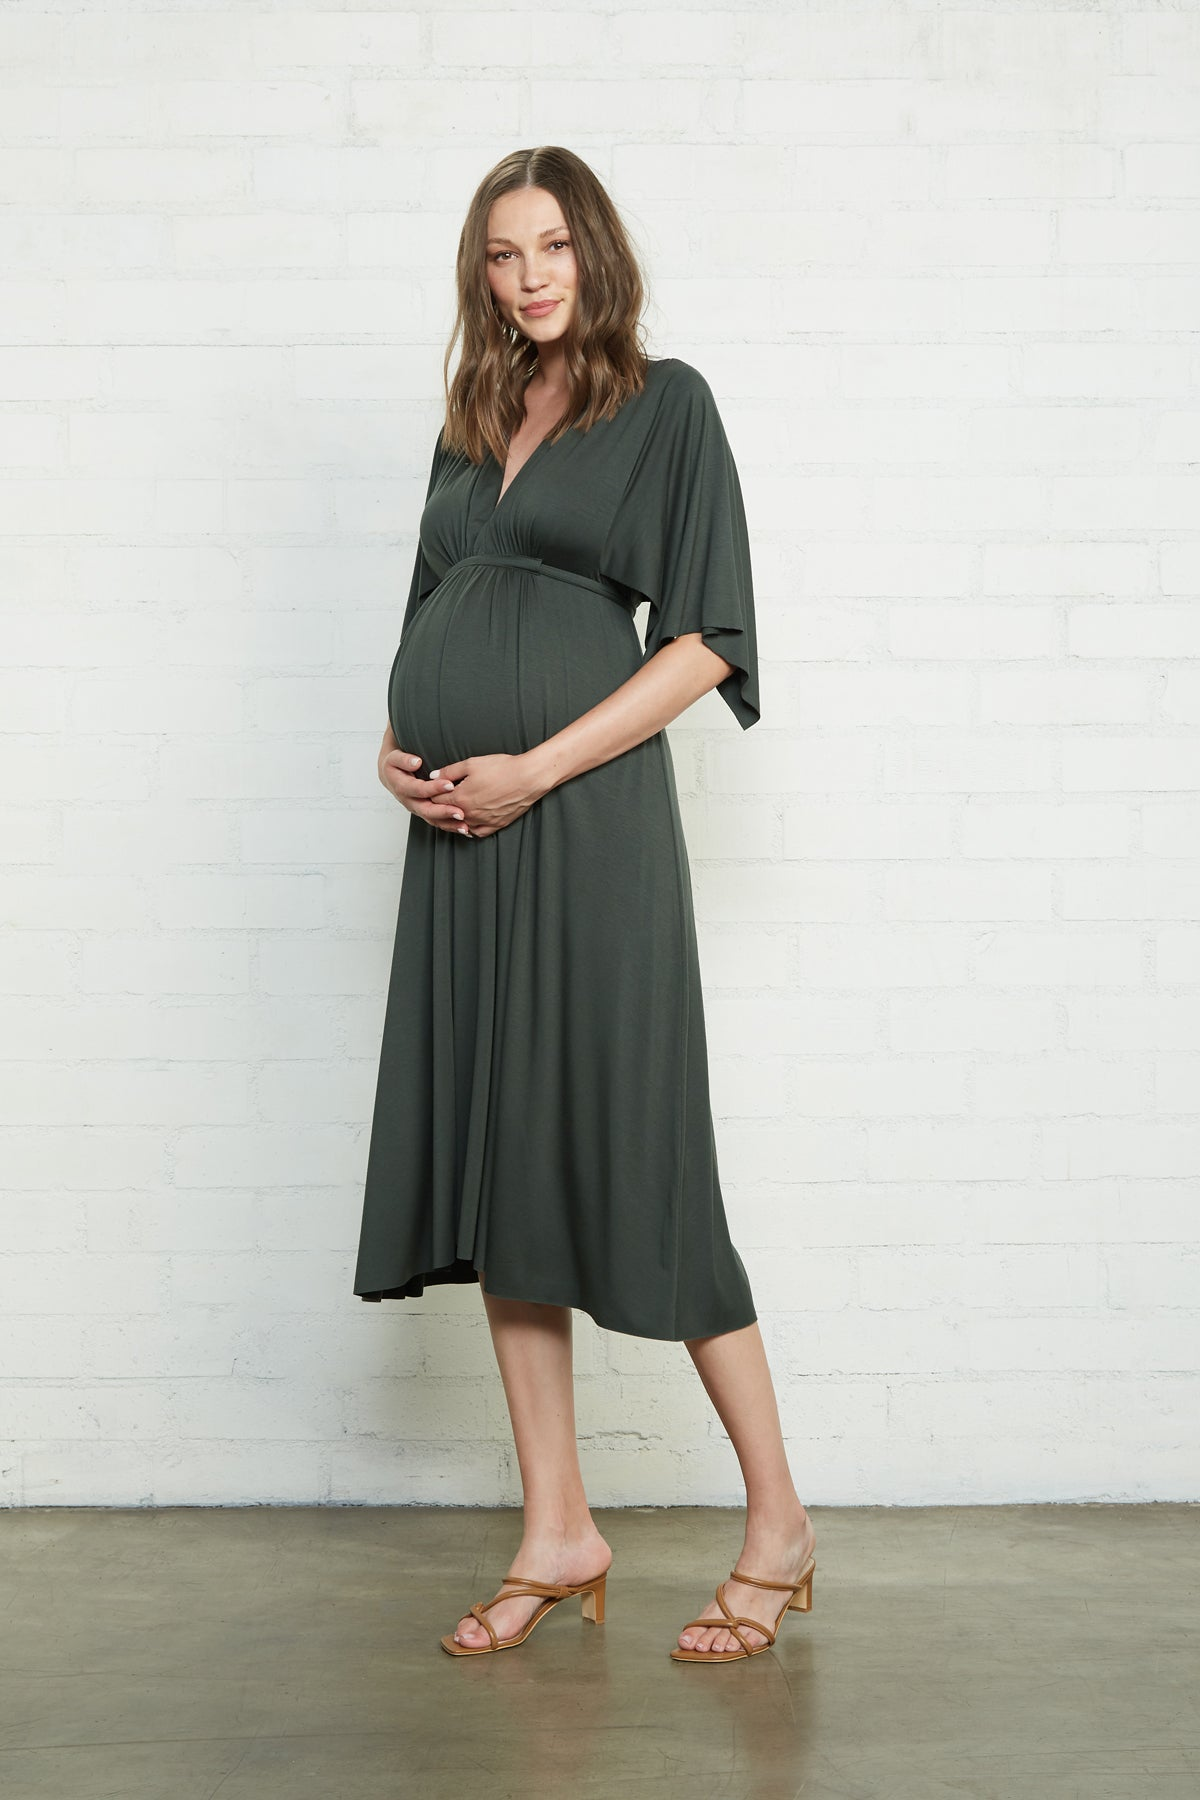 Mid-Length Caftan Dress - Juniper, Maternity